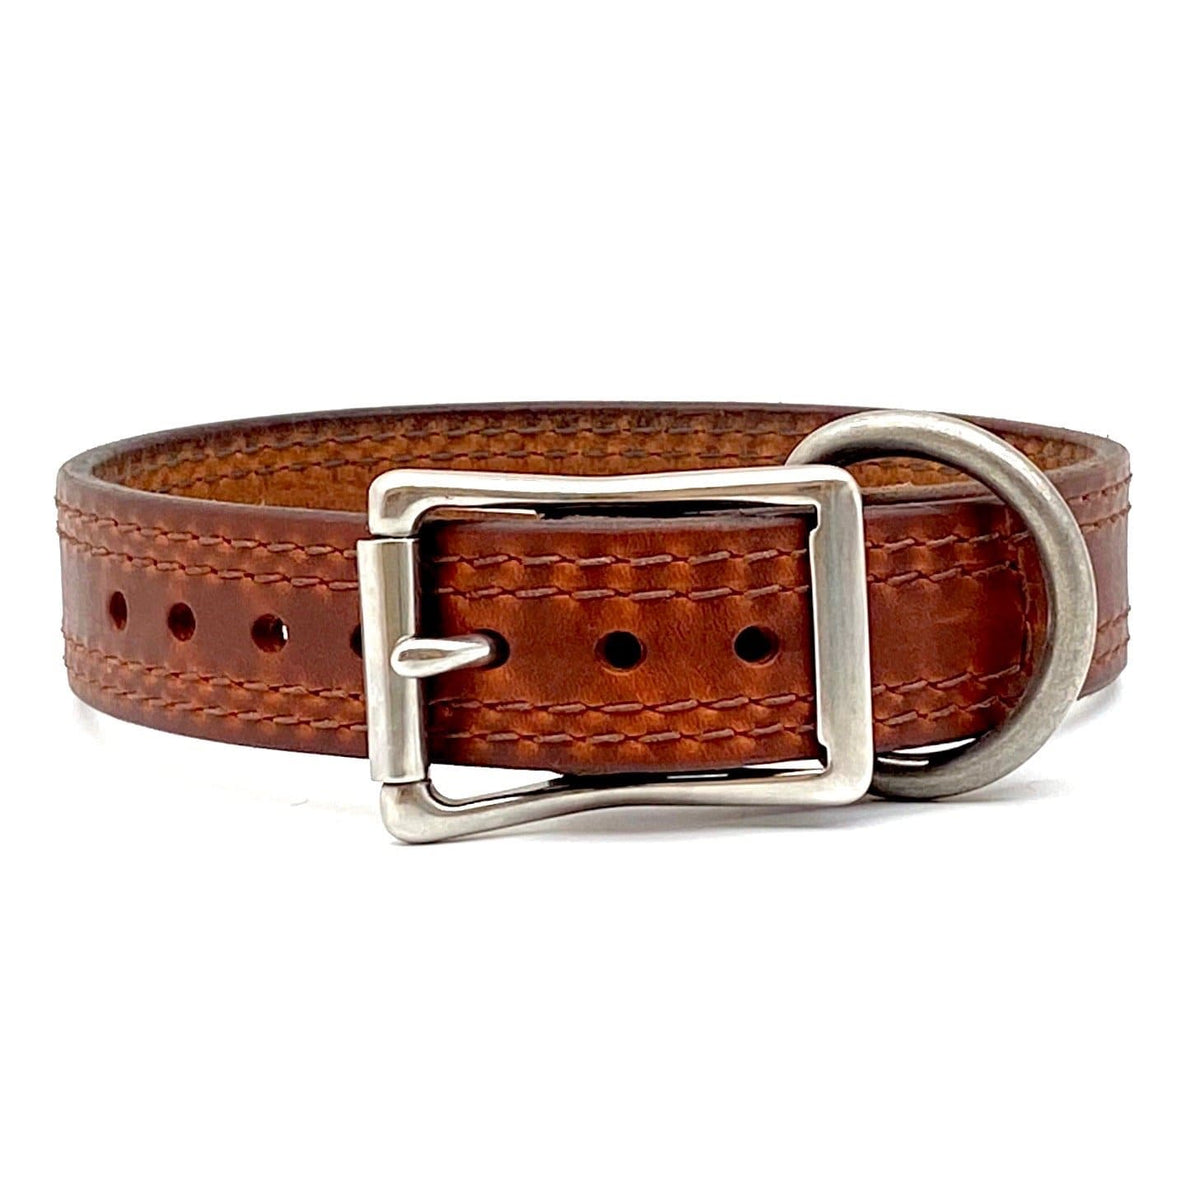 The COPPERHEAD DOG COLLAR